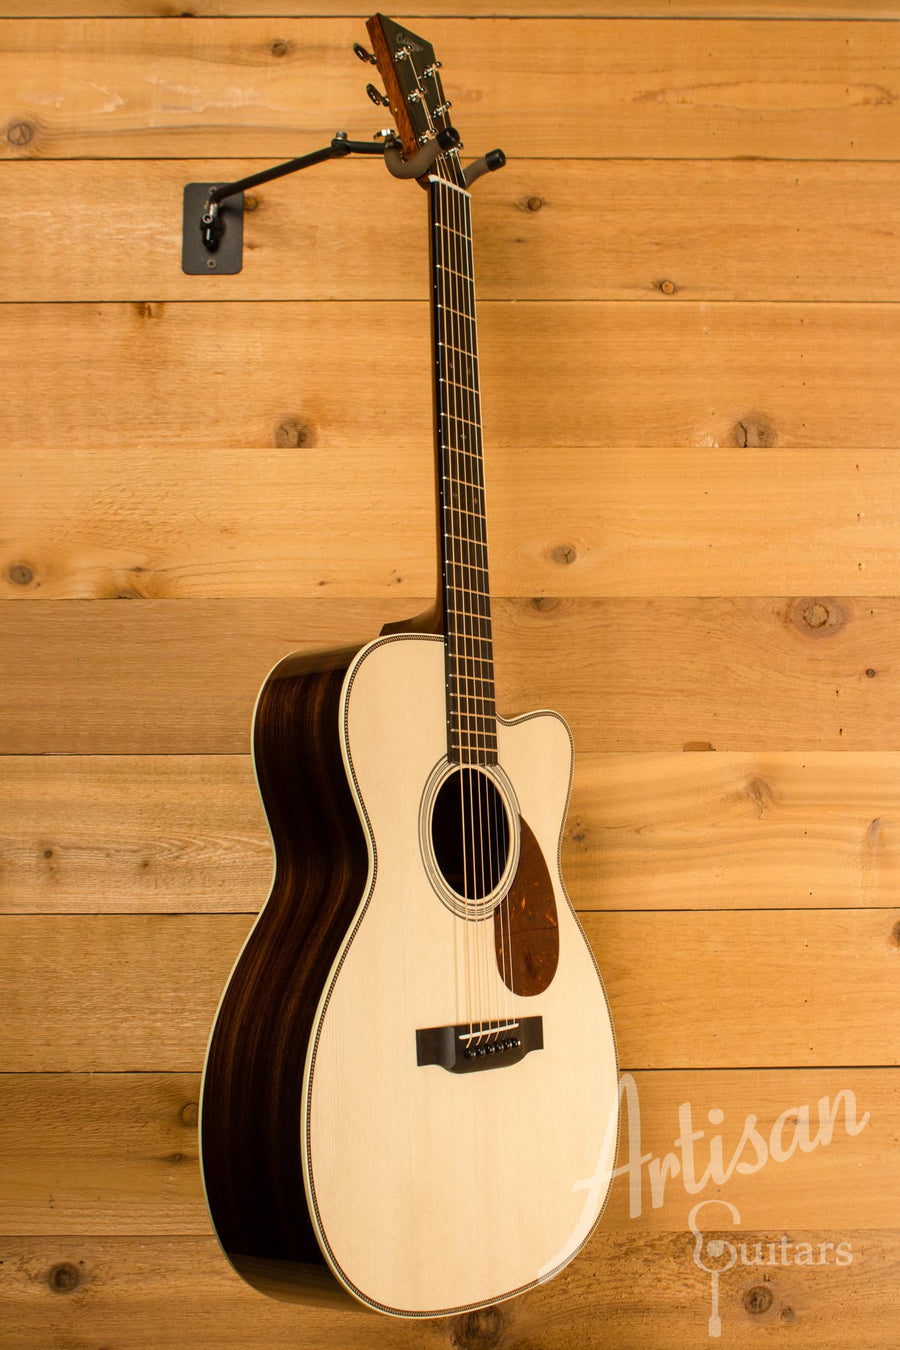 Collings OM2H Guitar Cutaway Engelmann Spruce and Indian Rosewood ID-10477 - Artisan Guitars